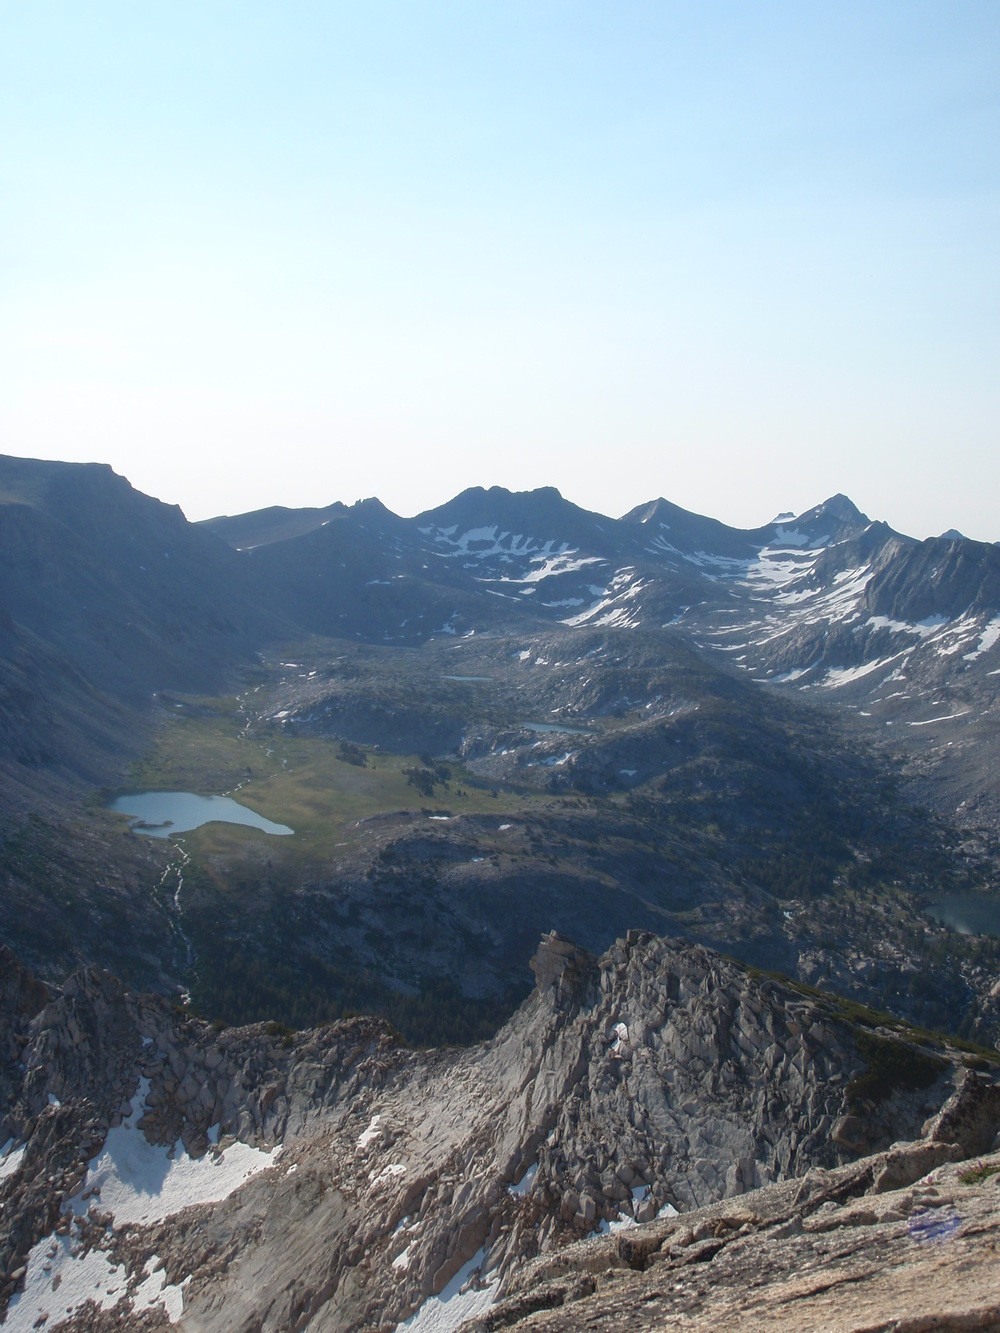 The view from just below Vogelsang Peak (11,498'), Yosemite highcountry. June 2013.